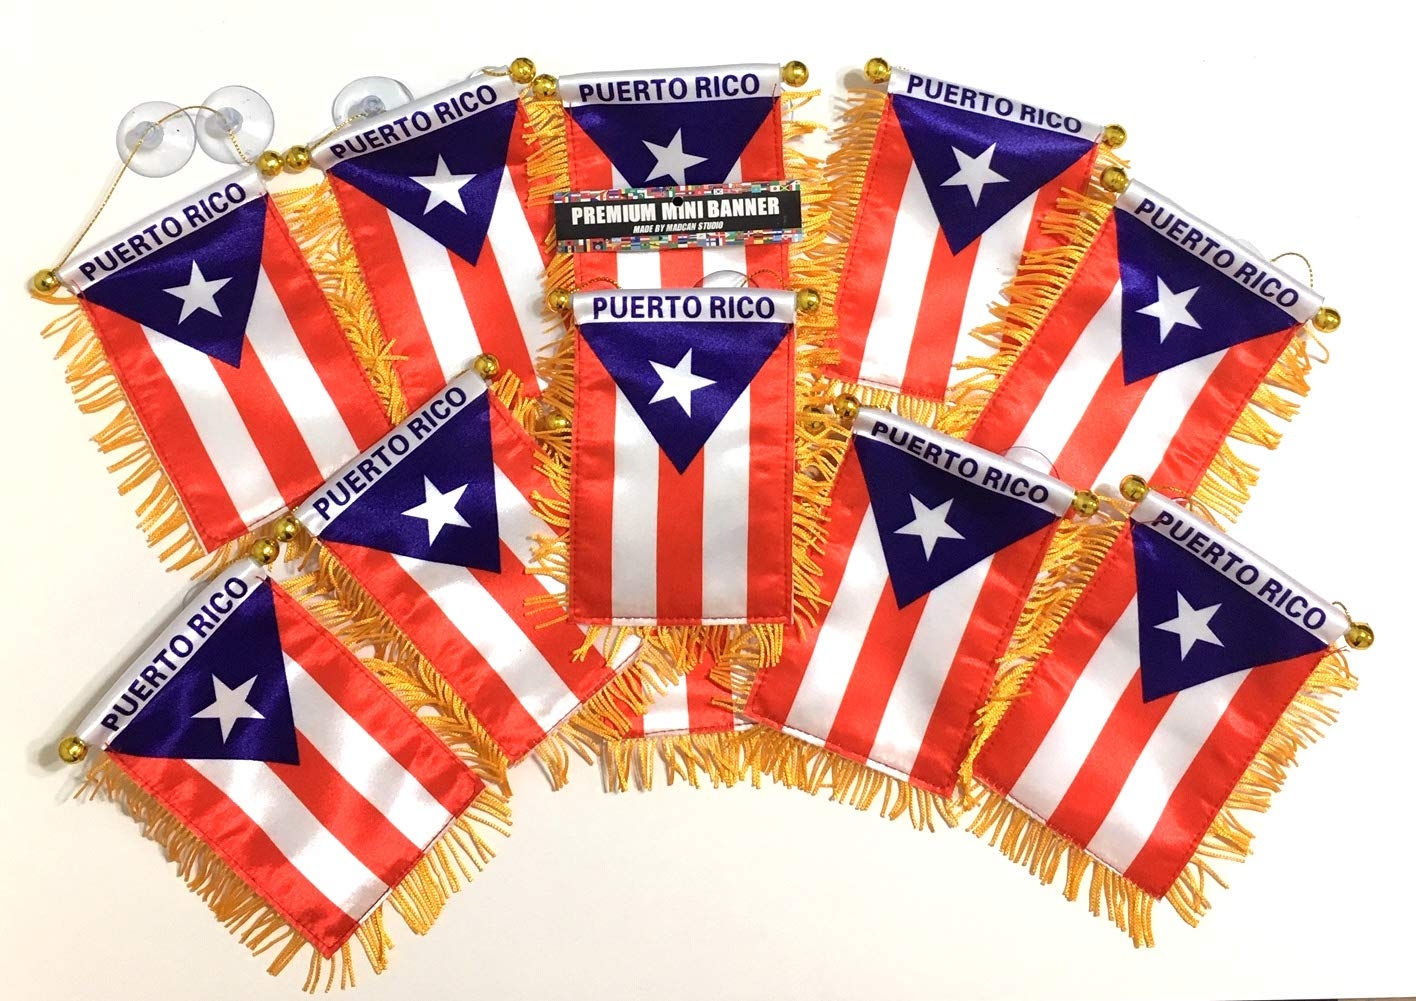 Mad can studios Puerto Rico Flags by The Dozen for Cars Automobile Accessories Home Wall Art Nice Country Flags Wholesale Direct (12)